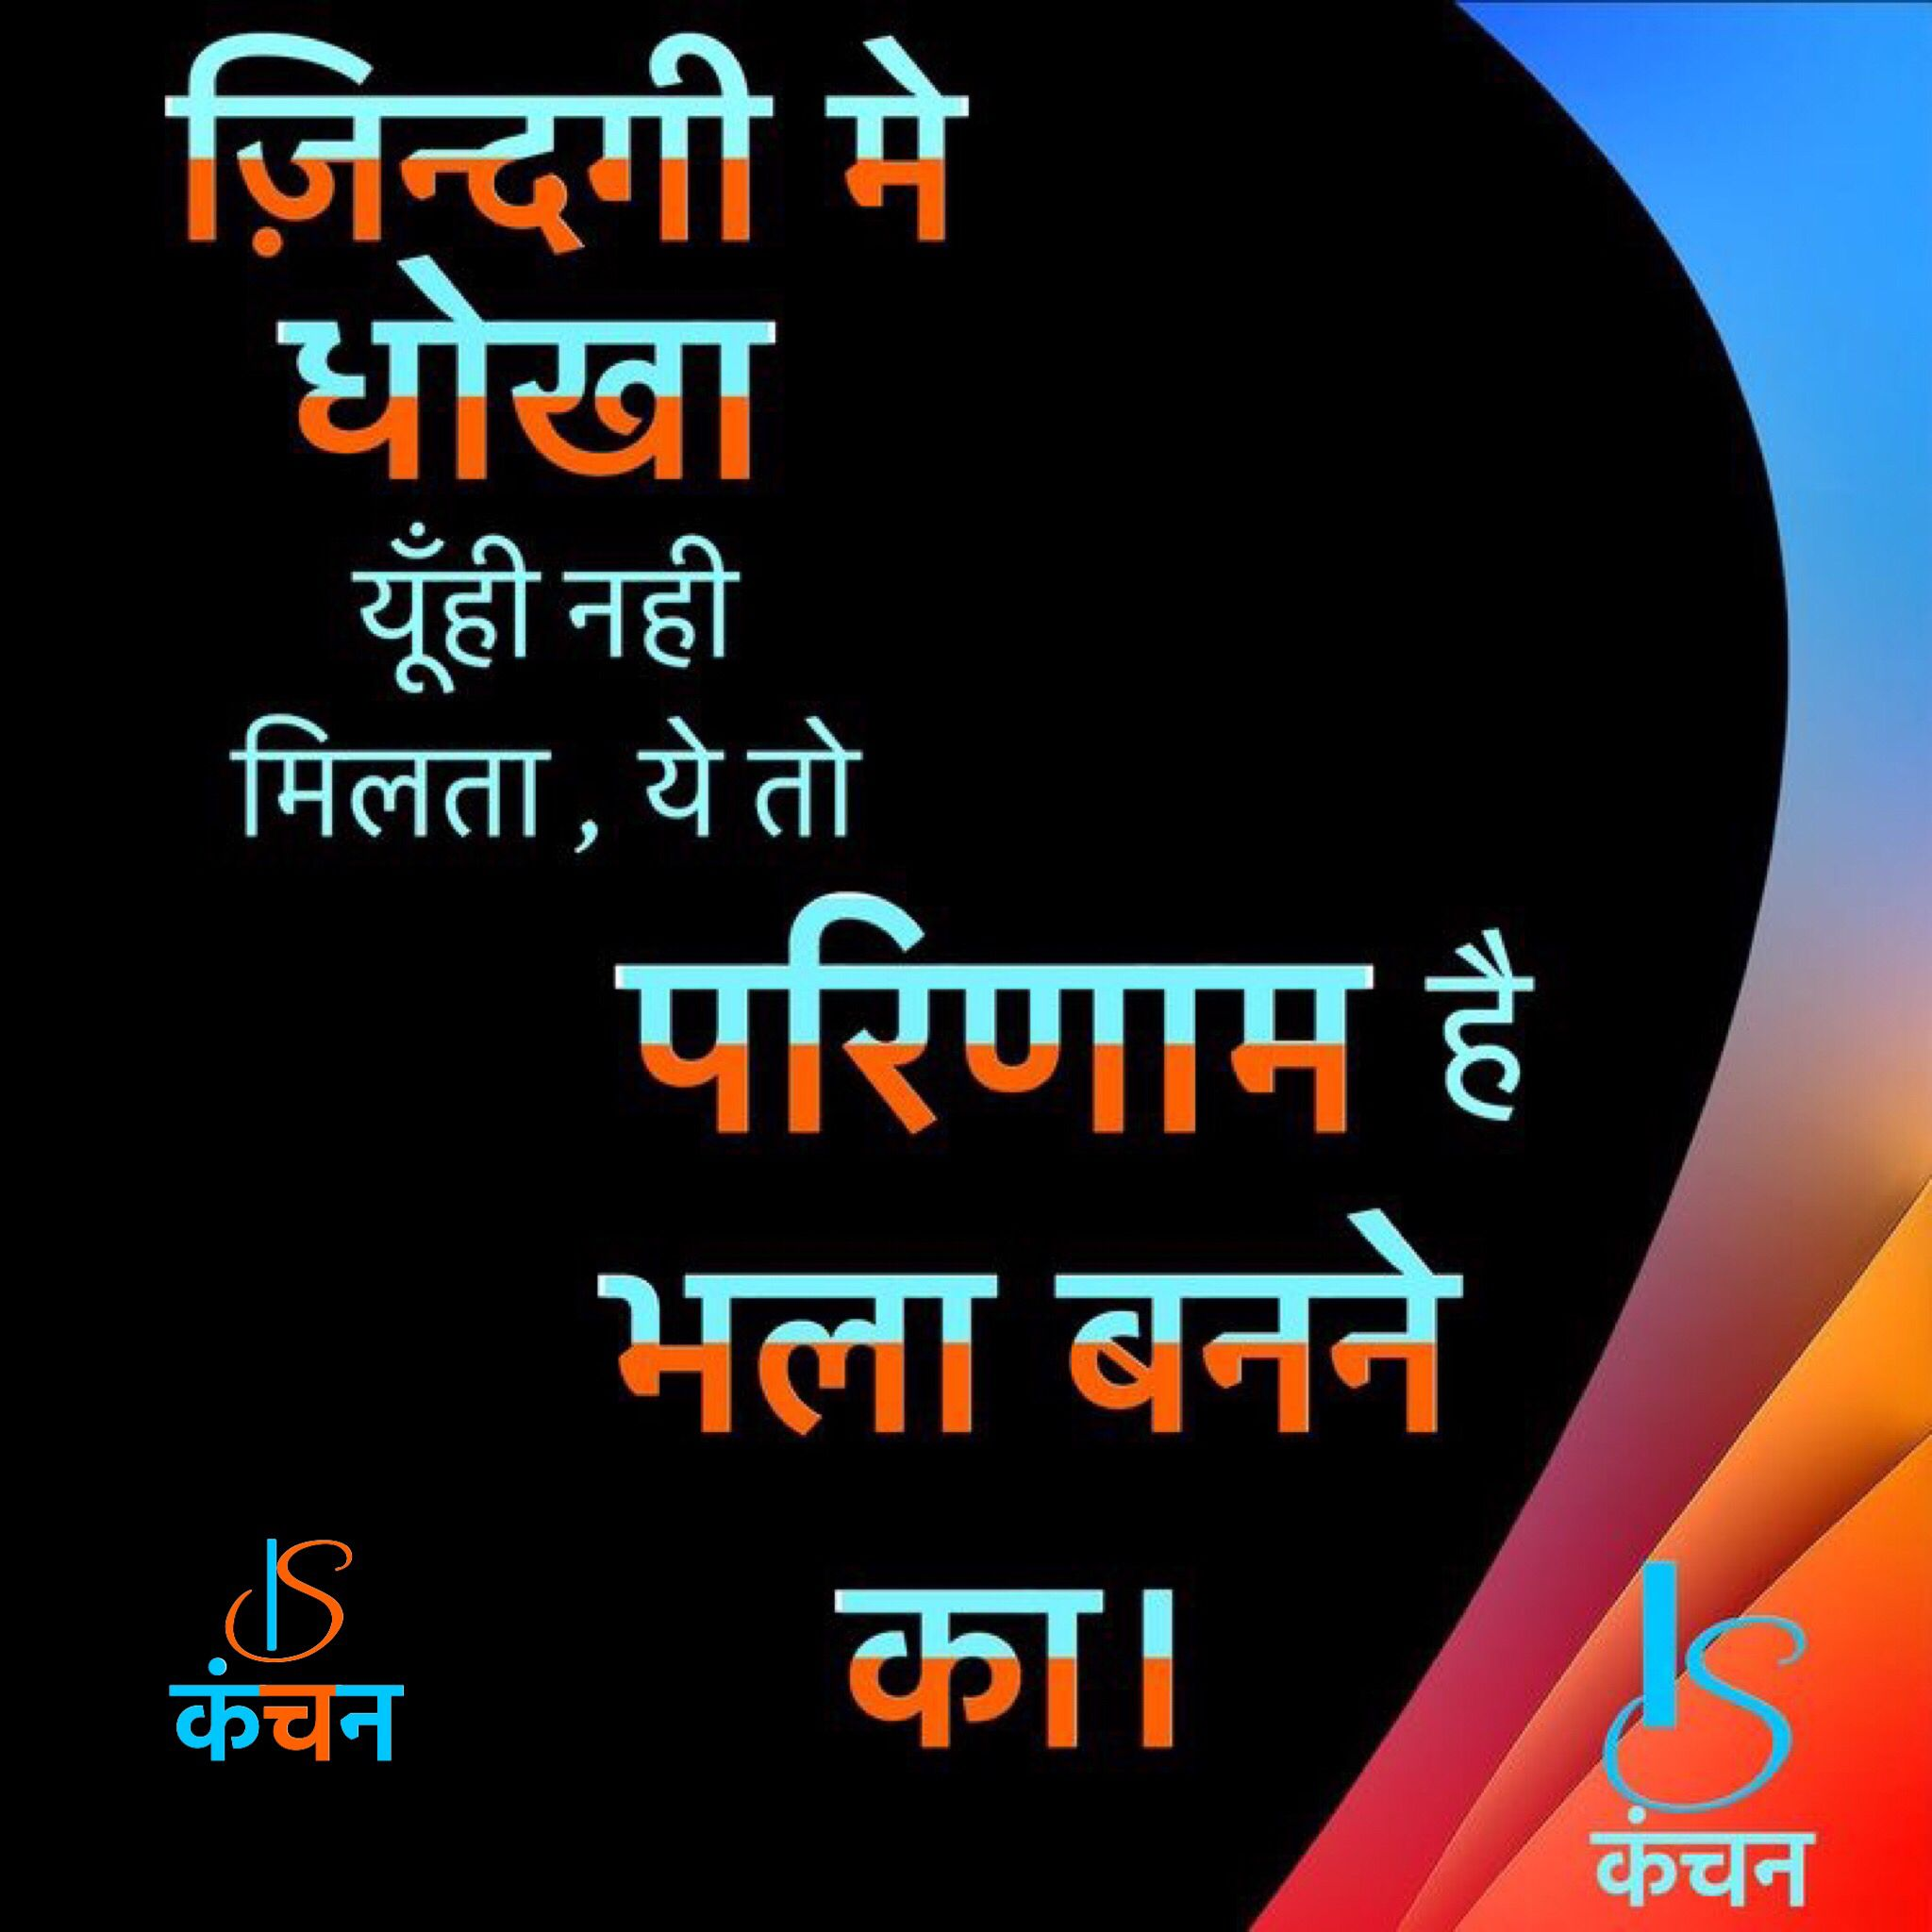 Pin By Kanchan Sunil On Hindi Quotes With Images Quotes Deep